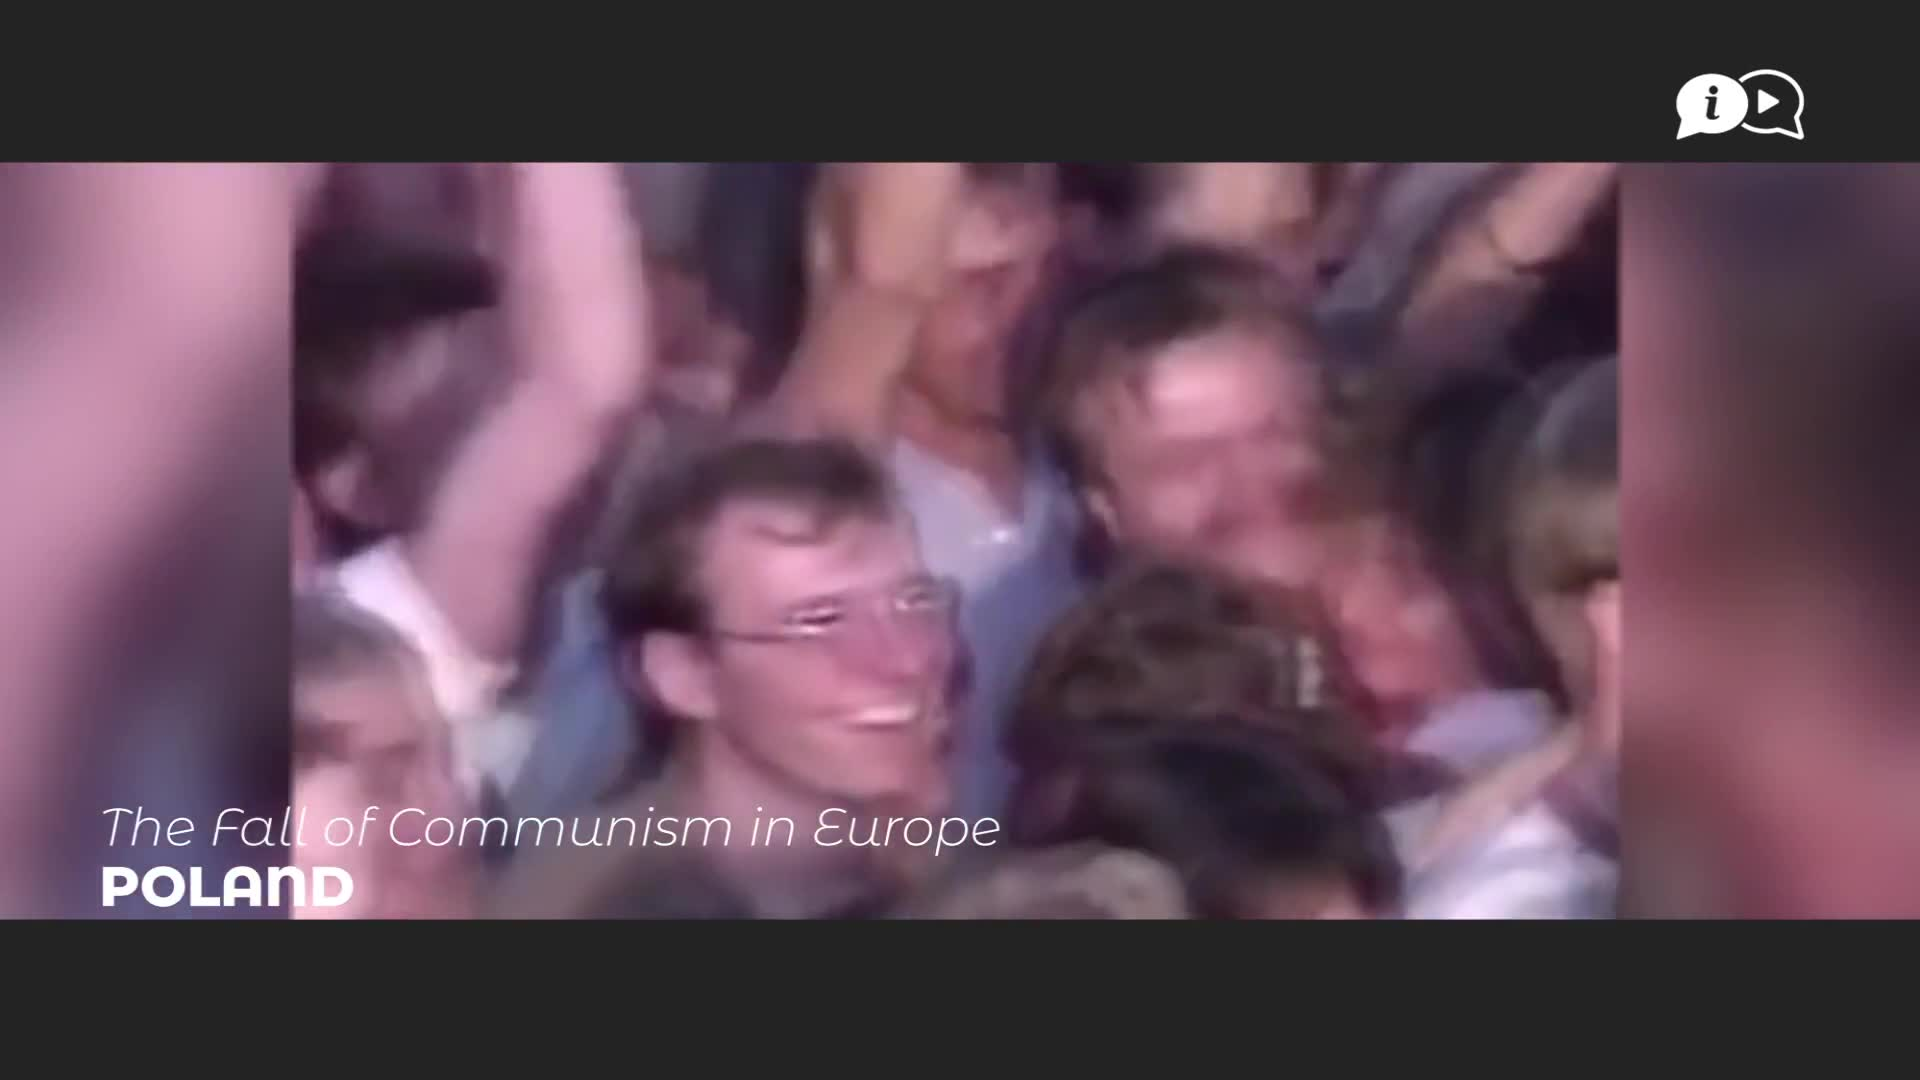 THE FALL OF COMMUNISM IN EUROPE